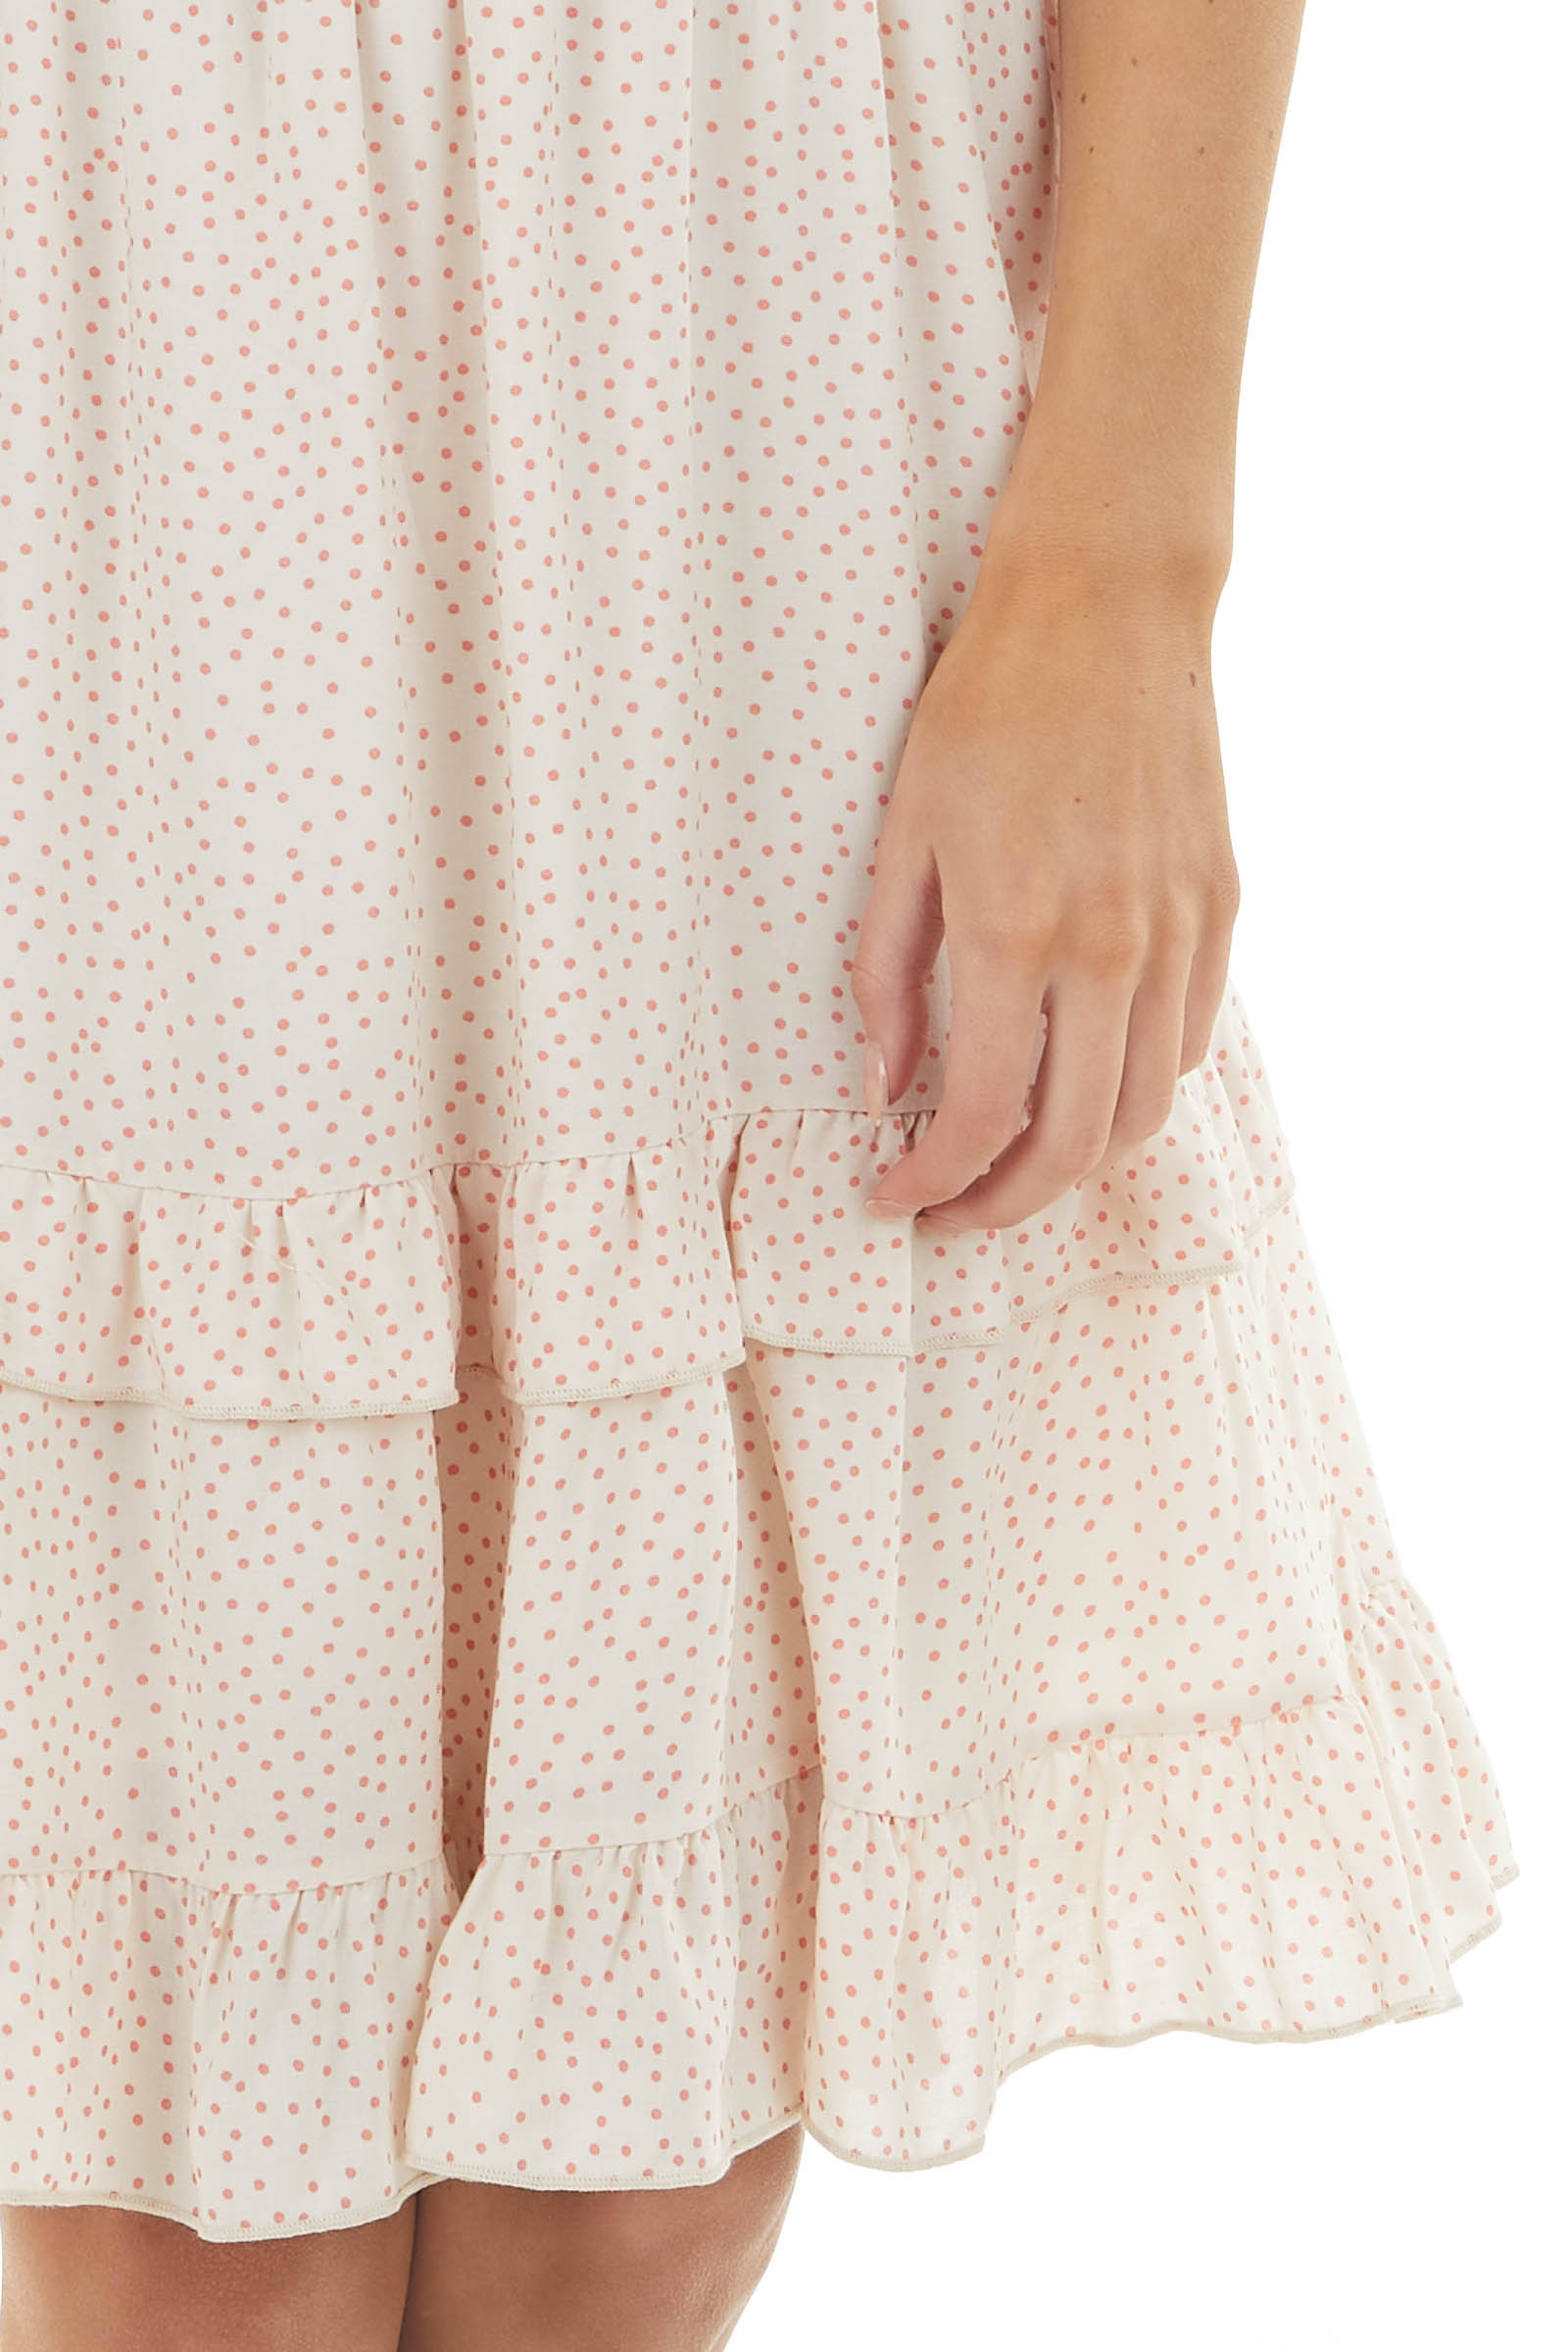 Peach Polka Dot Sleeveless Short Dress with Ruffle Details